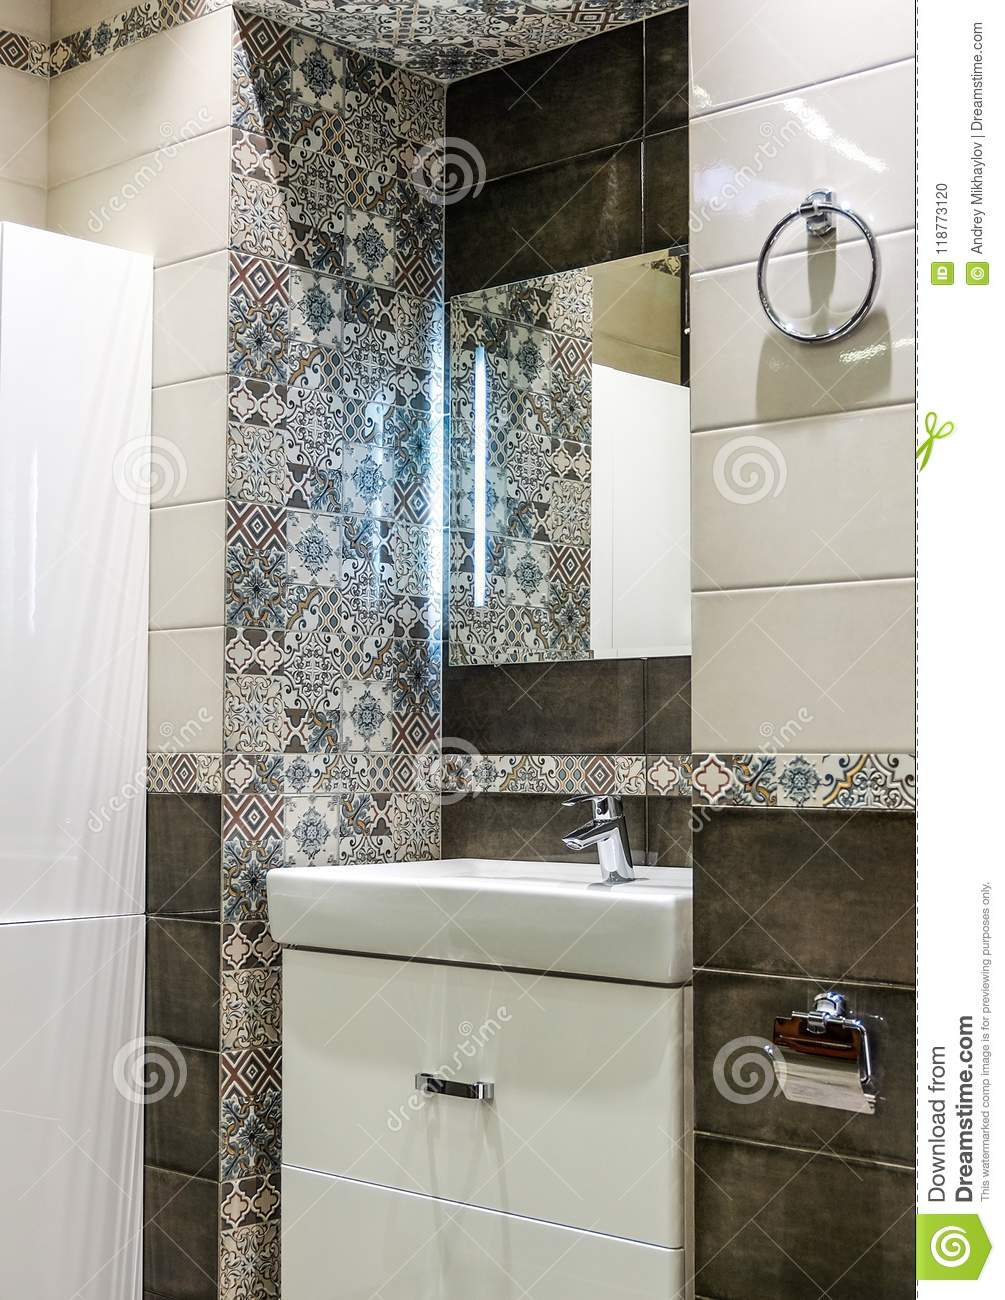 Wall Decoration With Ceramic Tiles In The Bathroom Stock Photo